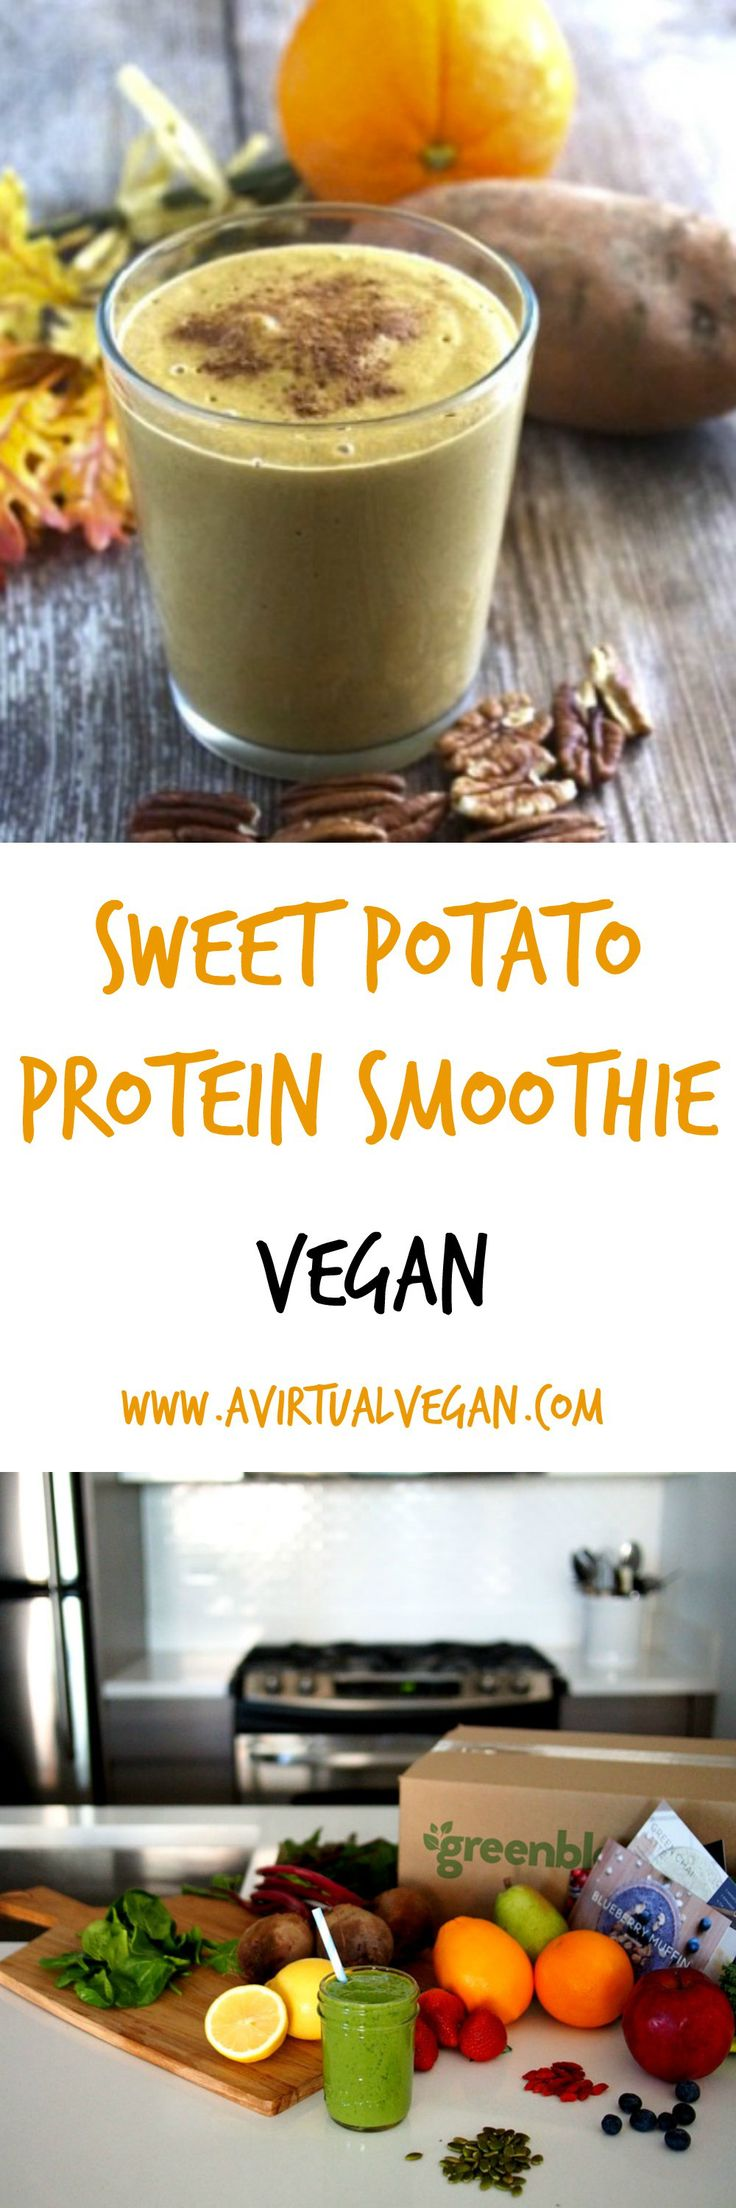 A great pre-workout smoothie! In addition to being an excellent source of beta-carotene, vitamin C, and fiber, sweet potatoes are made up of complex carbs, which provide the perfect source of energy. Pea protein is gaining prominence among athletes for its digestibility and for being a good source of arginine, a muscle-building amino acid. Add in some almond milk for calcium and some pecans for a hit of good fat, and you've got an all natural energy drink designed to give you an A+ workout.